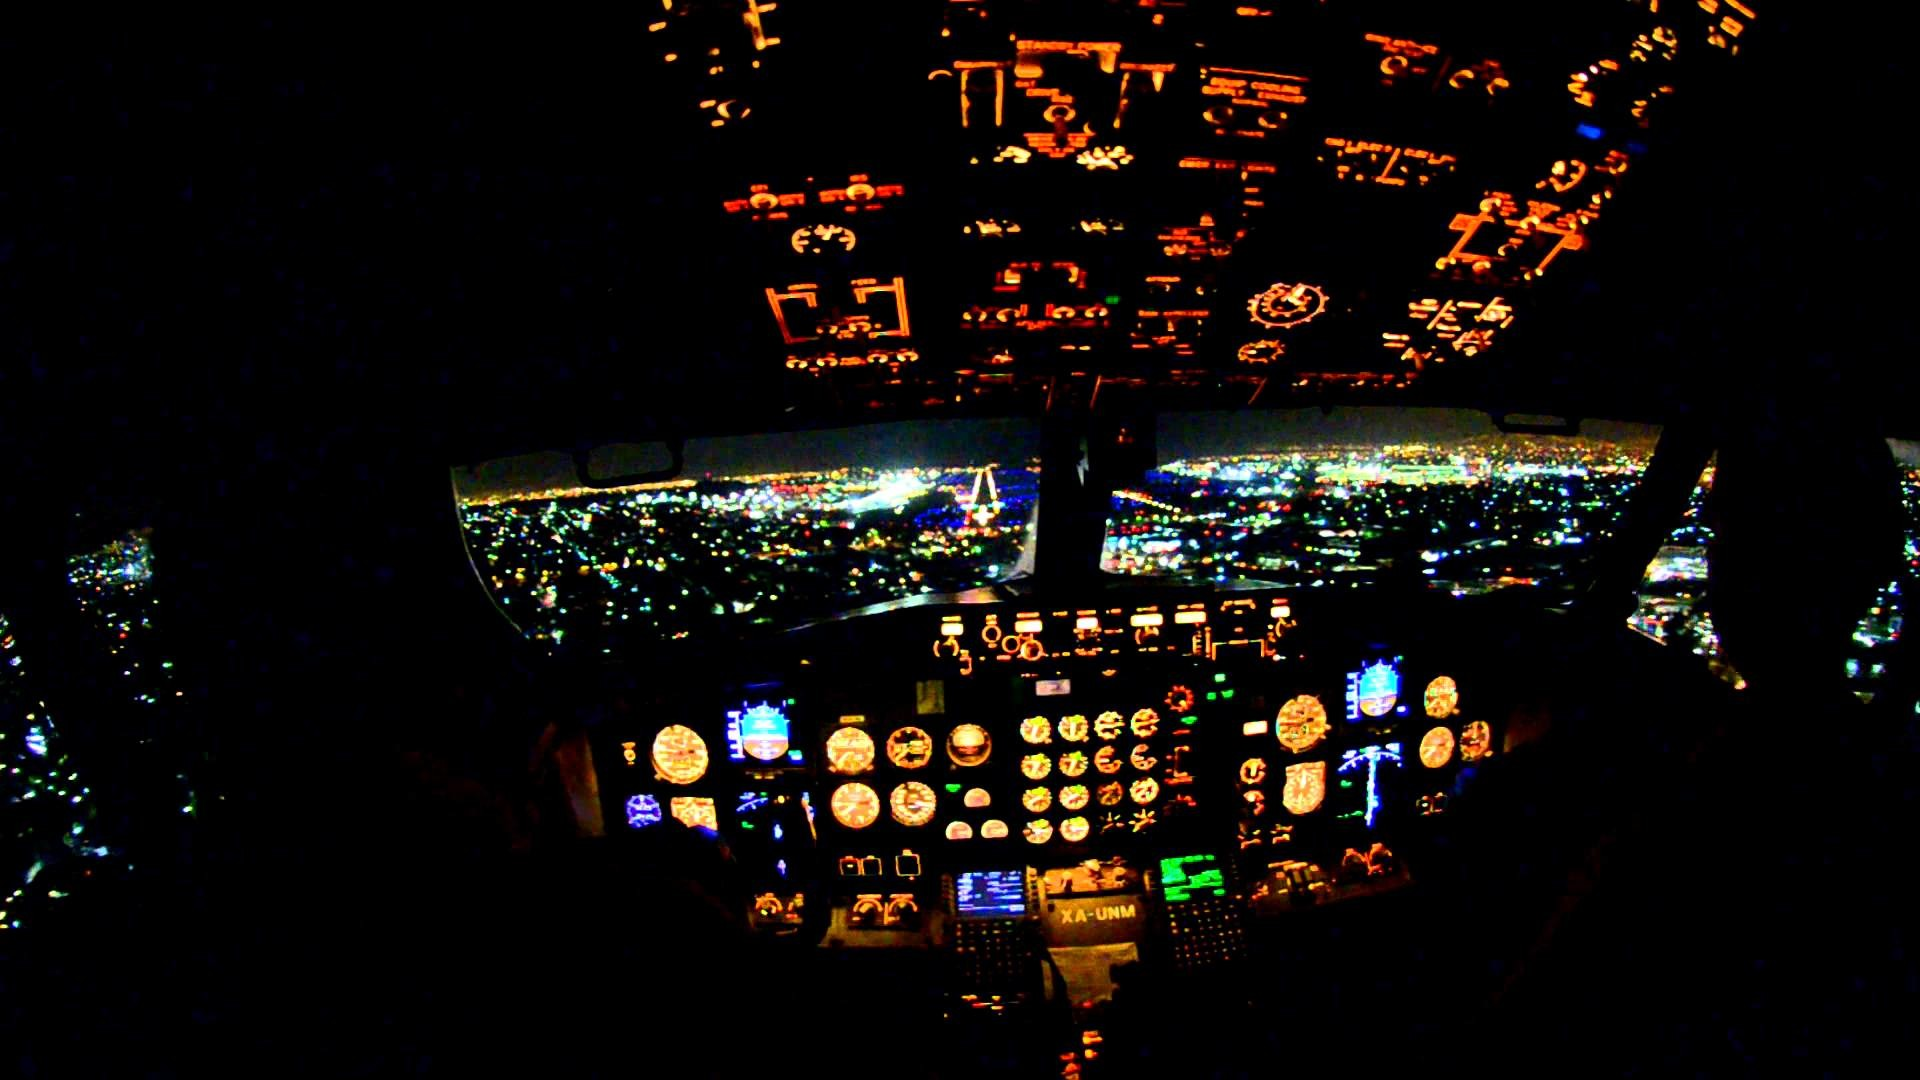 airbus a380 cockpit wallpaper   Vehicle Pictures